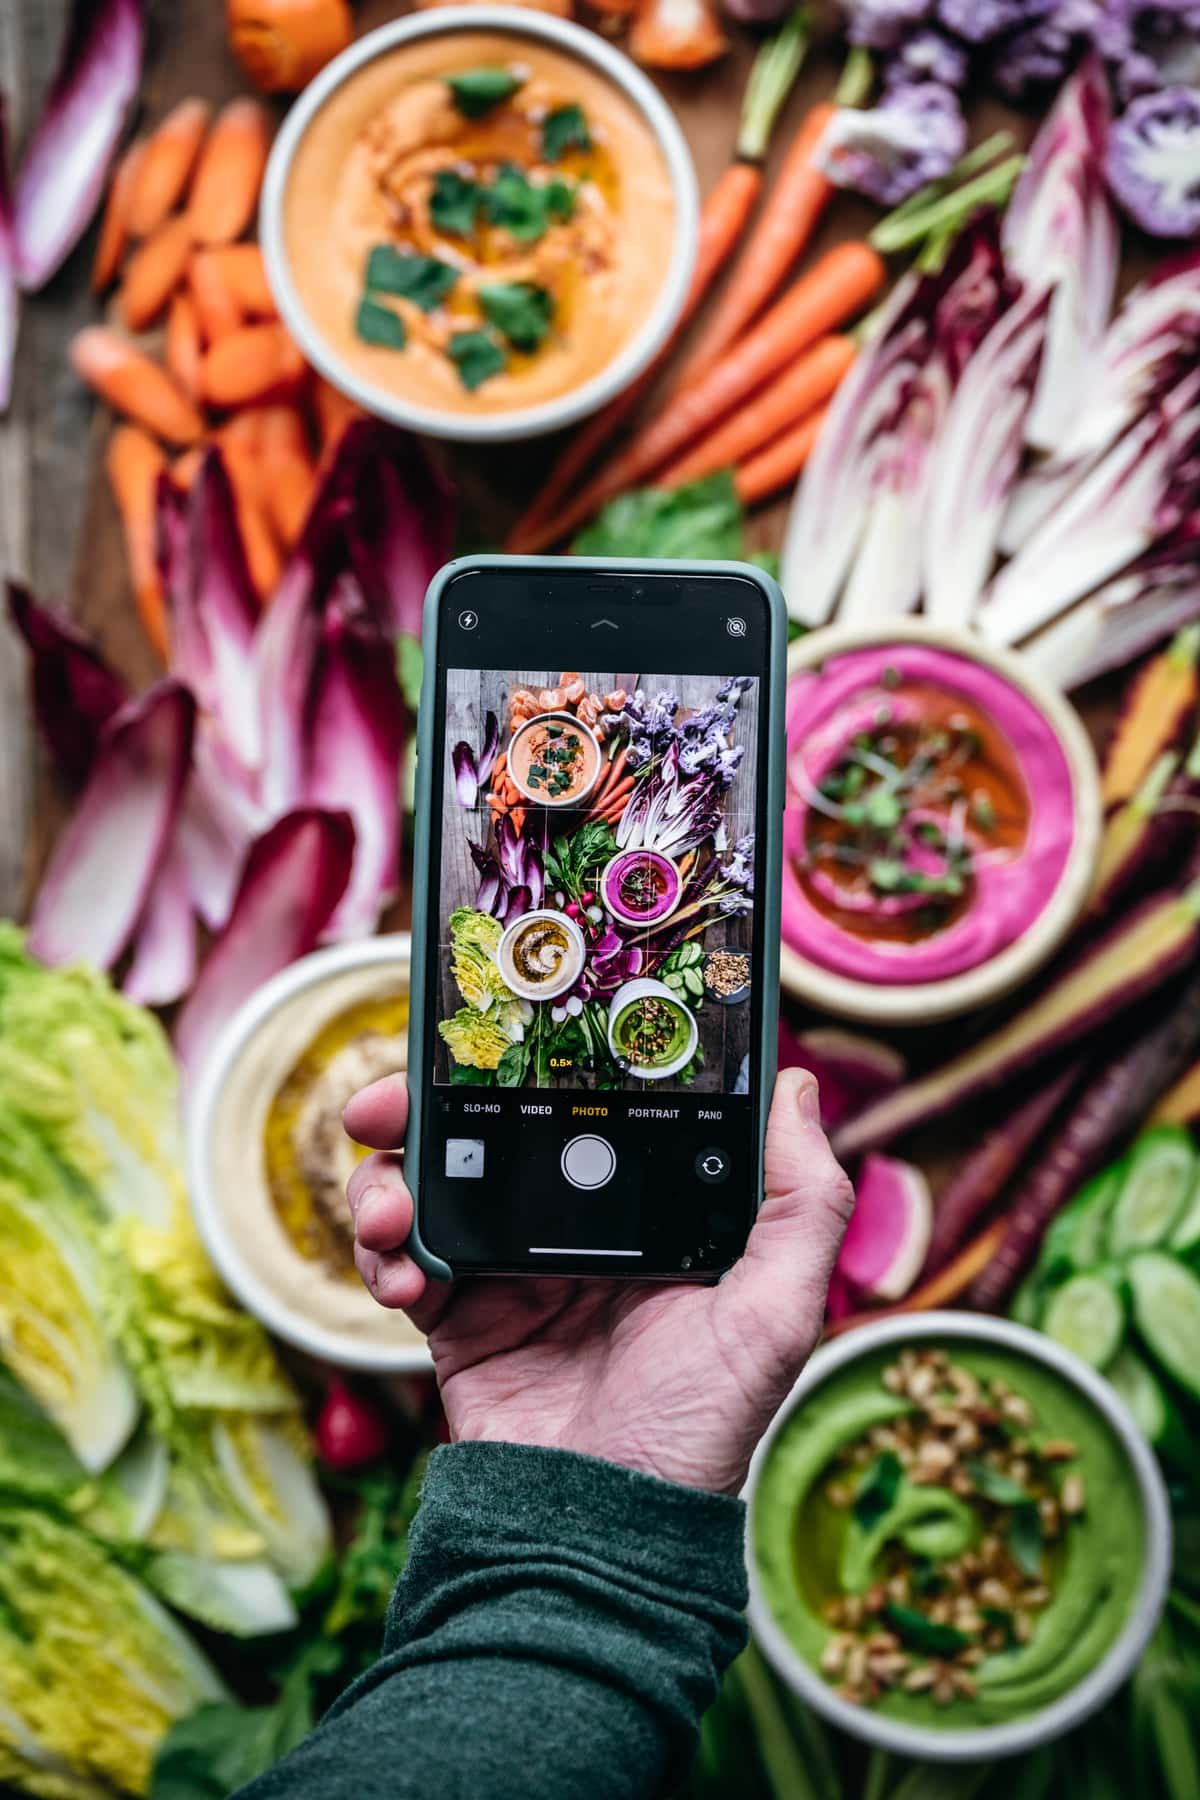 overhead view of person holding phone over colorful hummus platter